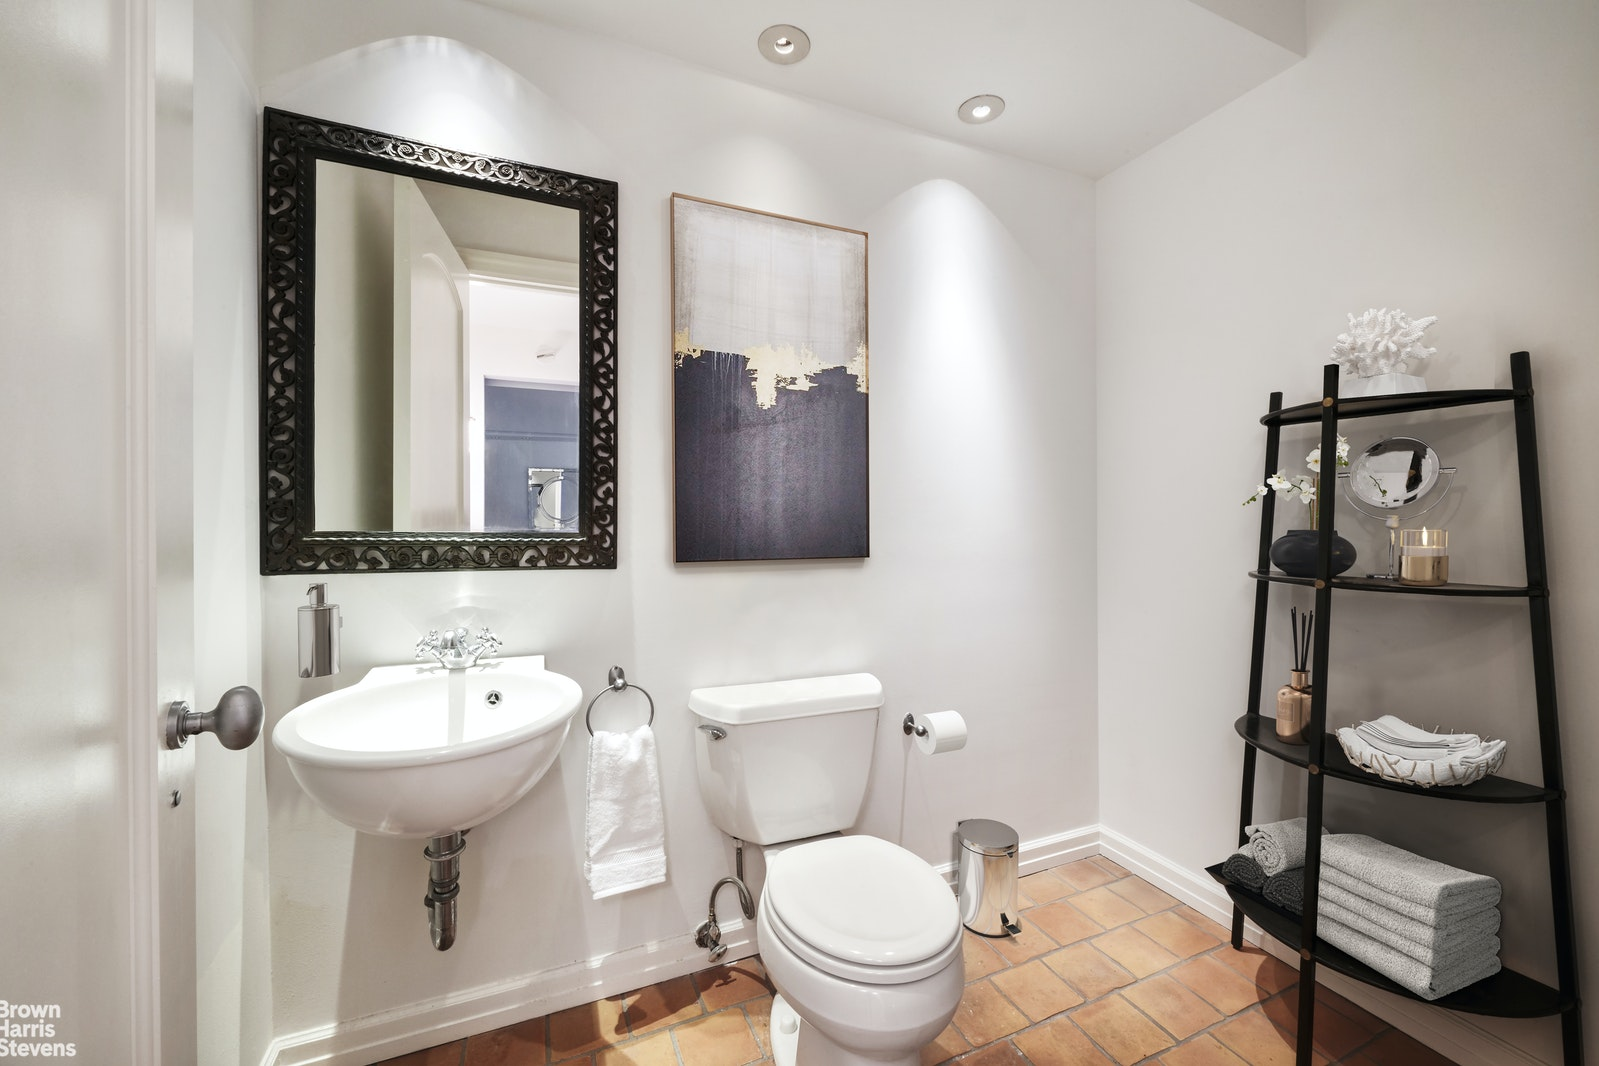 225 West 83rd Street 4k, Upper West Side, NYC, 10024, $4,995,000, Property For Sale, Halstead Real Estate, Photo 13